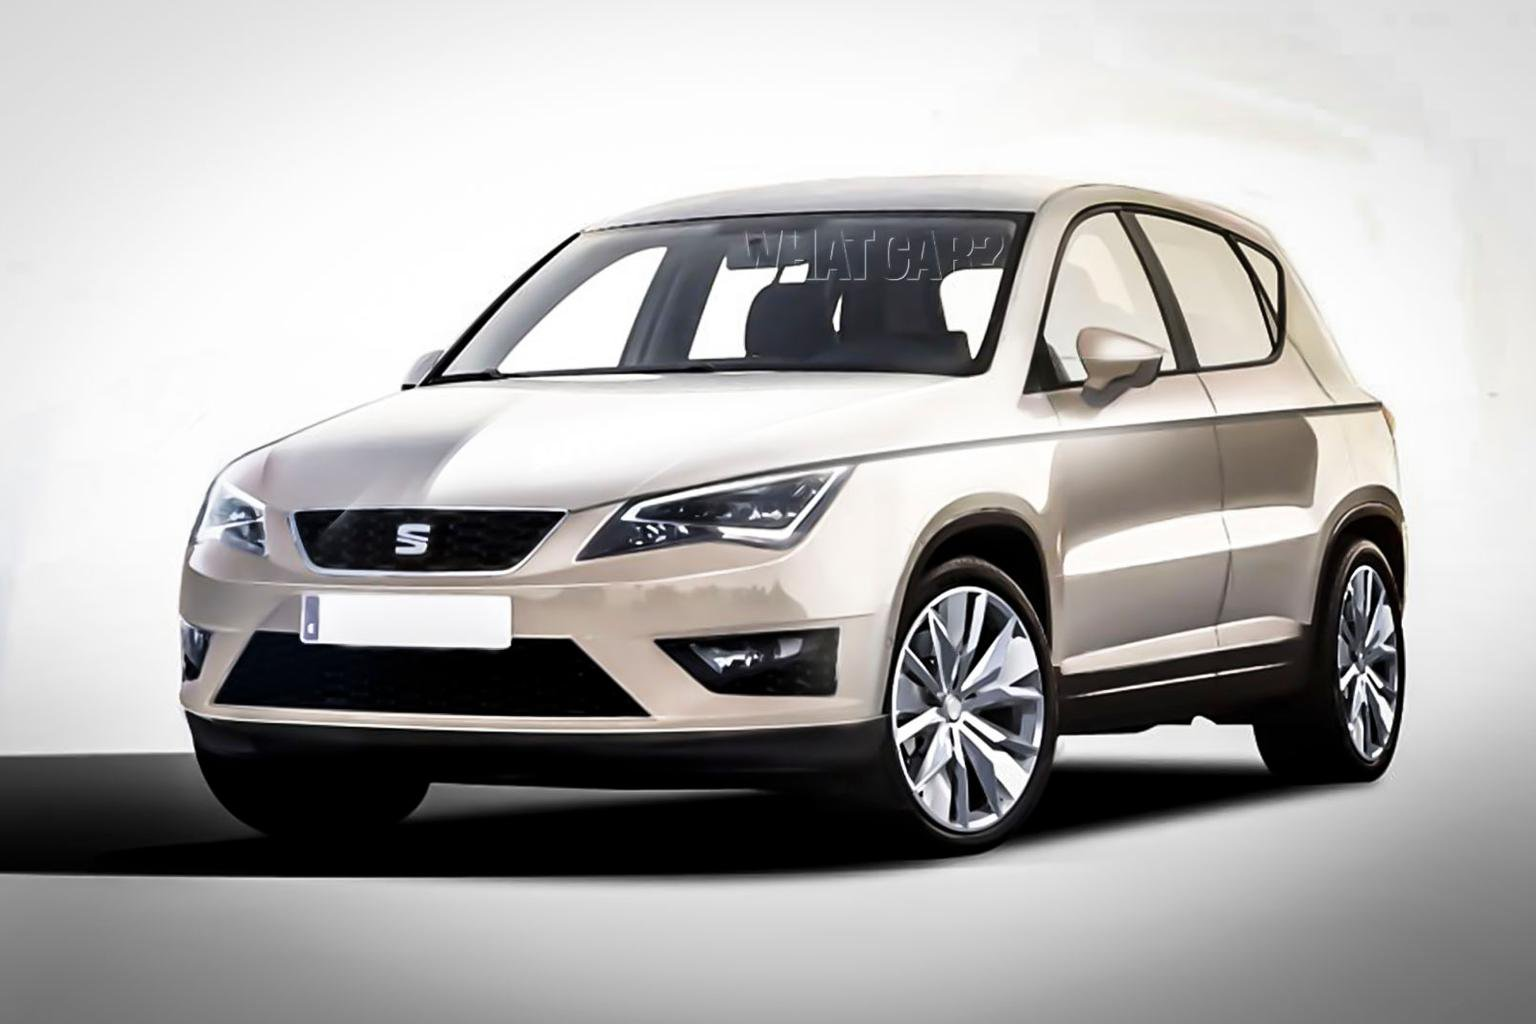 2016 Seat SUV - on-sale date, engines and prices